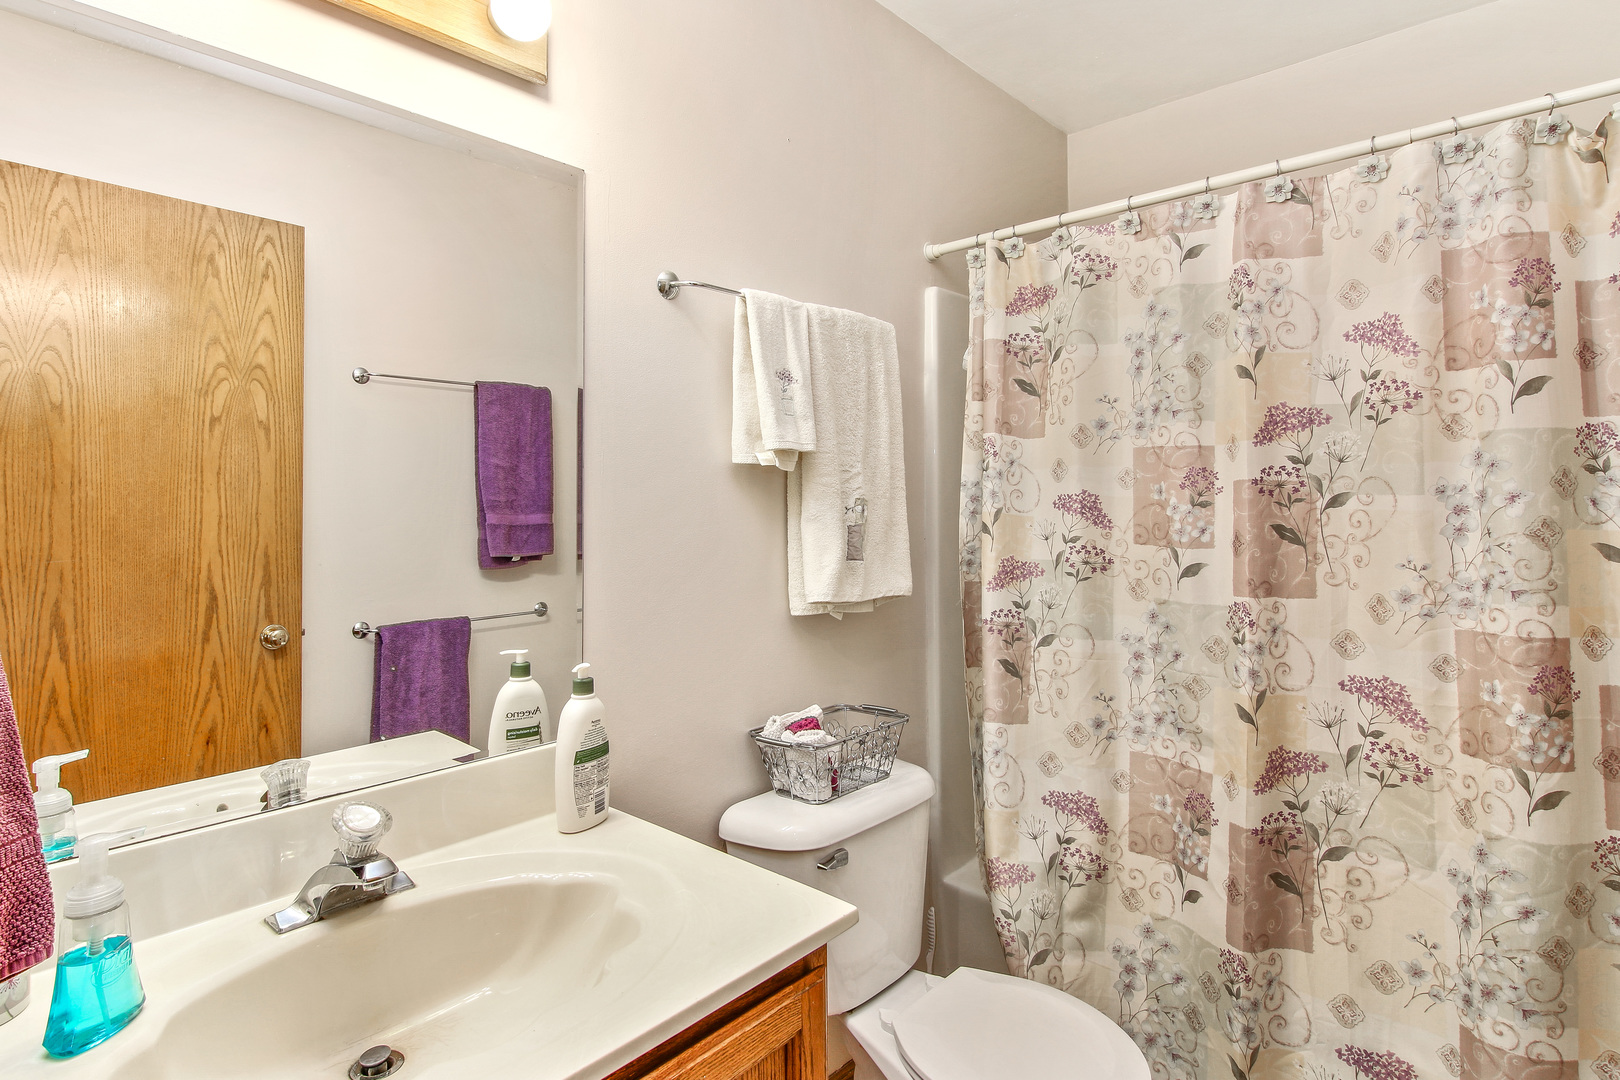 4473 North State Route 23, Leland, Illinois, 60531